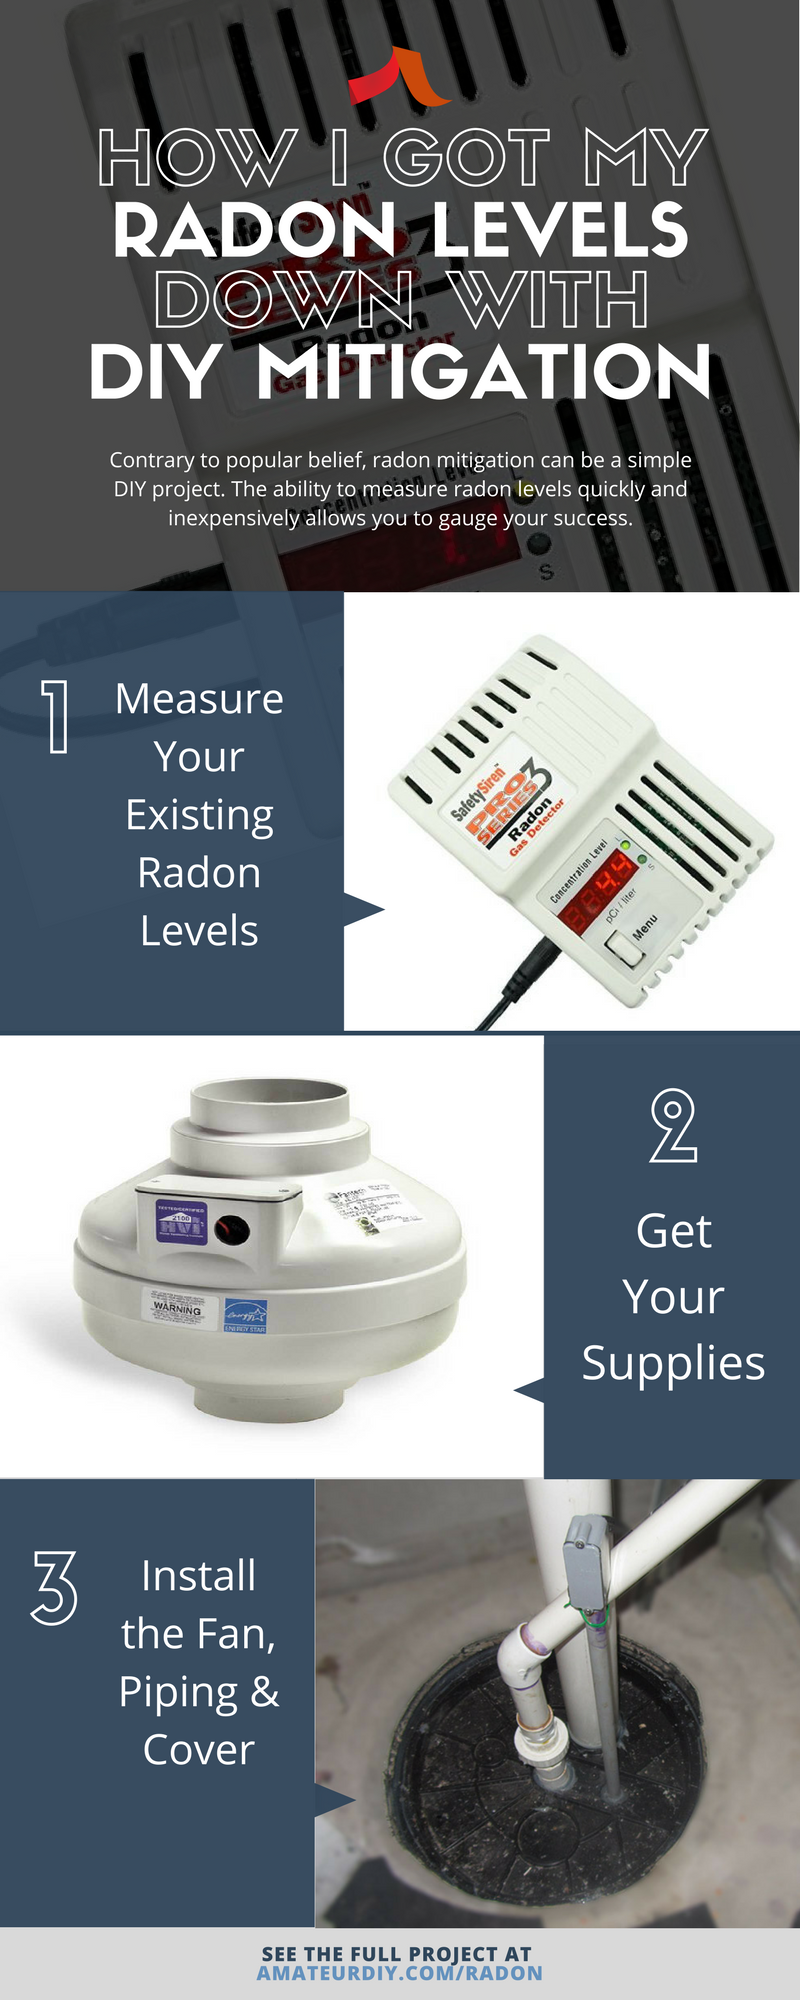 how i got my radon levels down with diy mitigation | basements